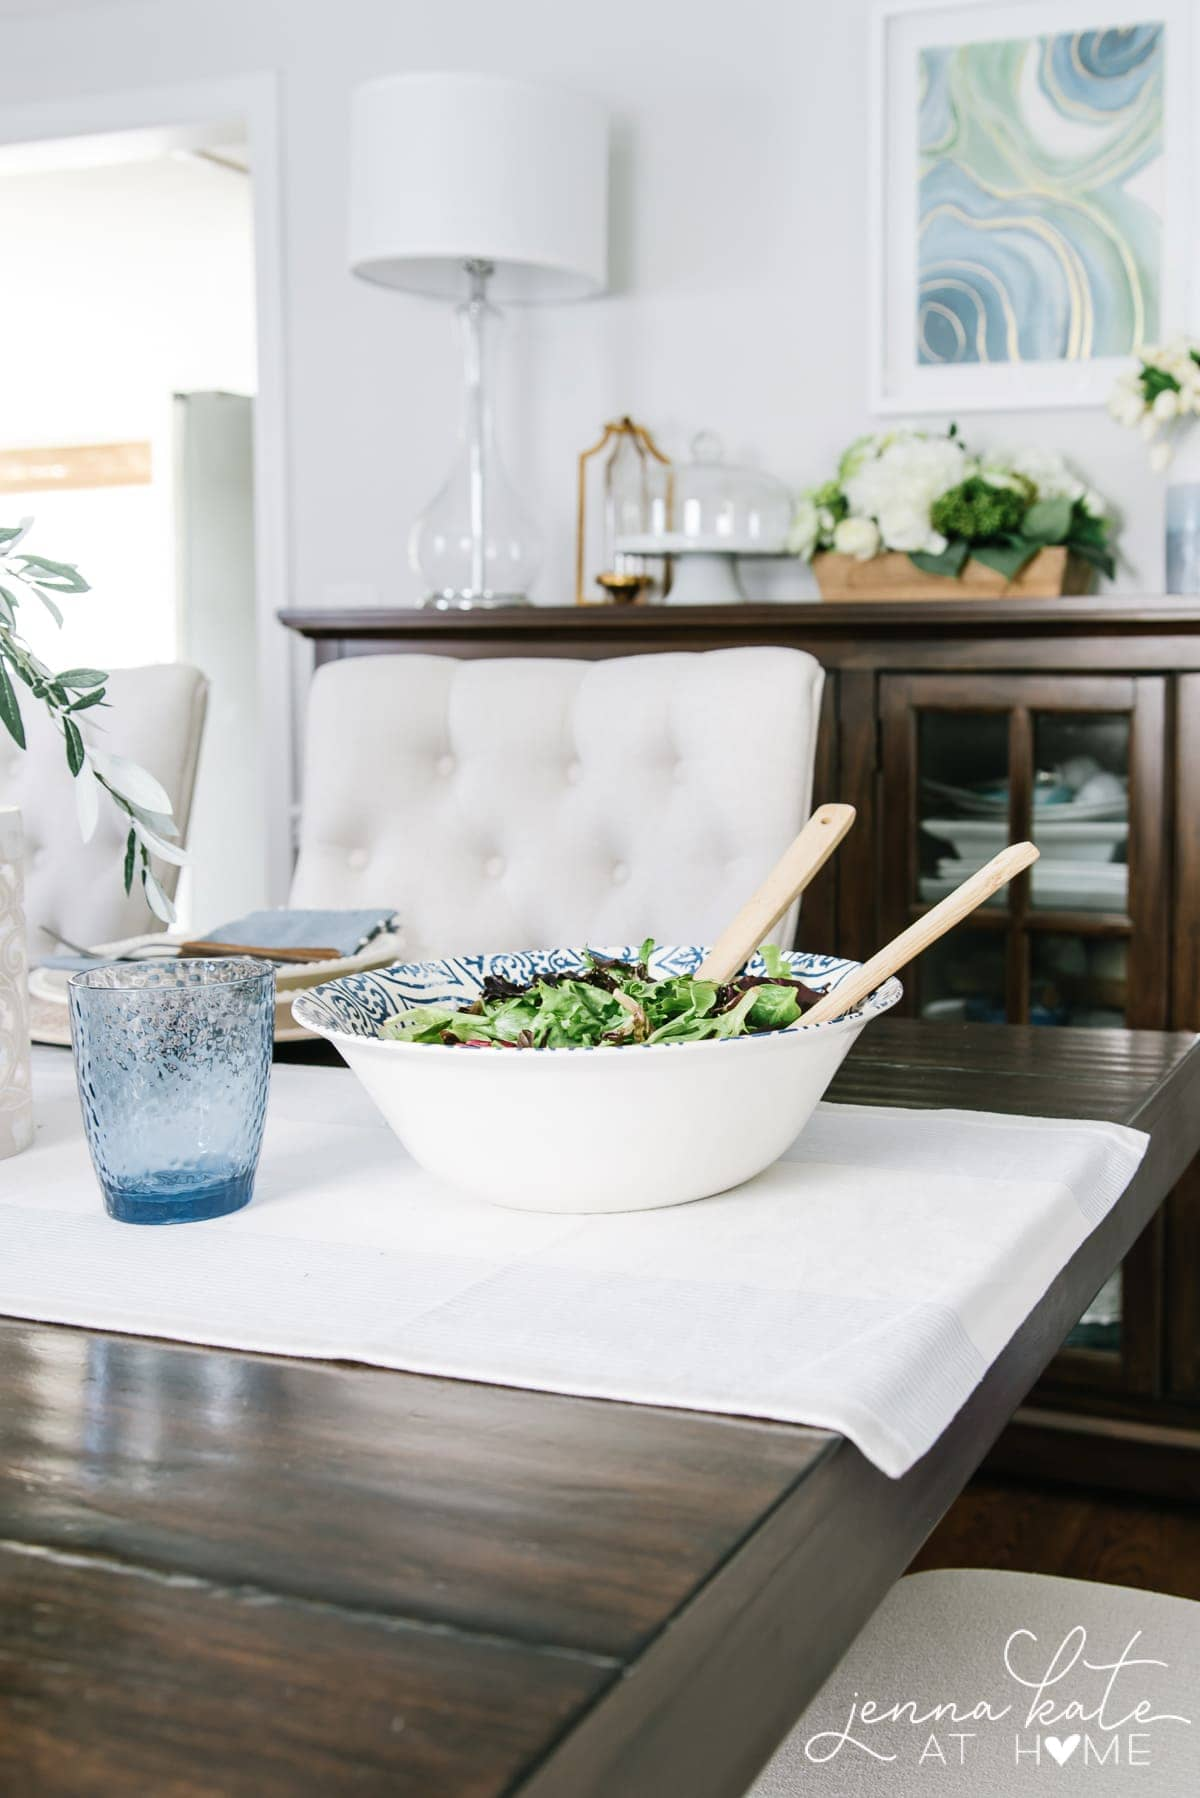 A simple coastal table setting that's perfect for summer with blue and white color scheme